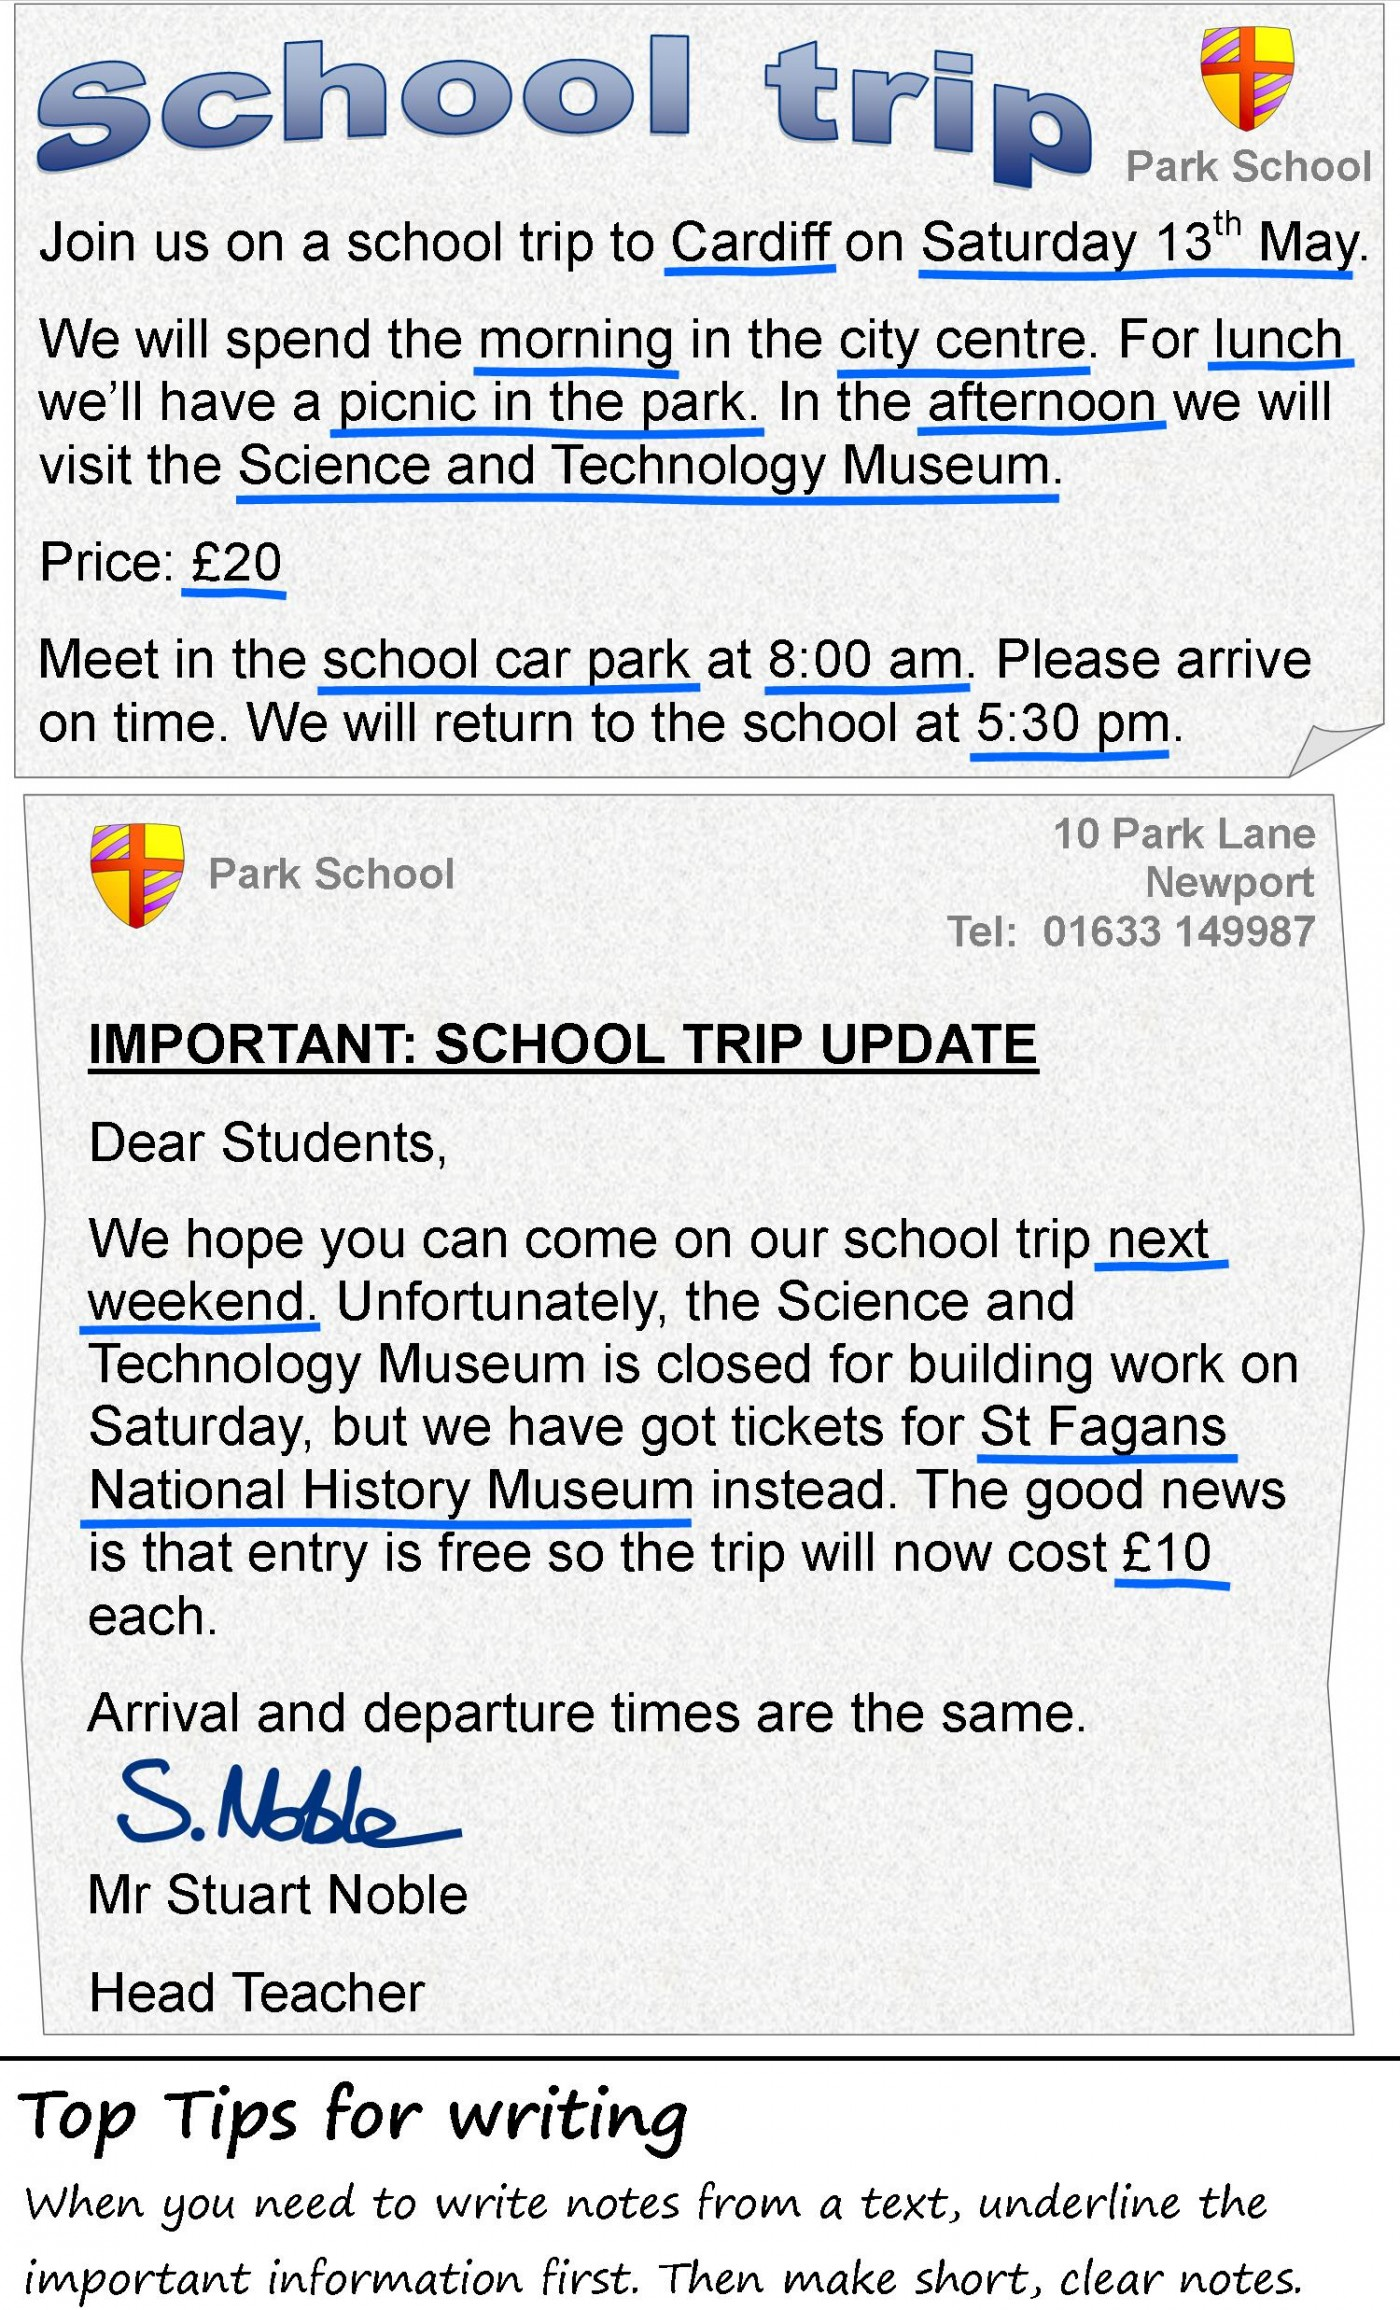 009 The School Trip 4 Essay Example My Favourite Newspaper In Striking English 1400